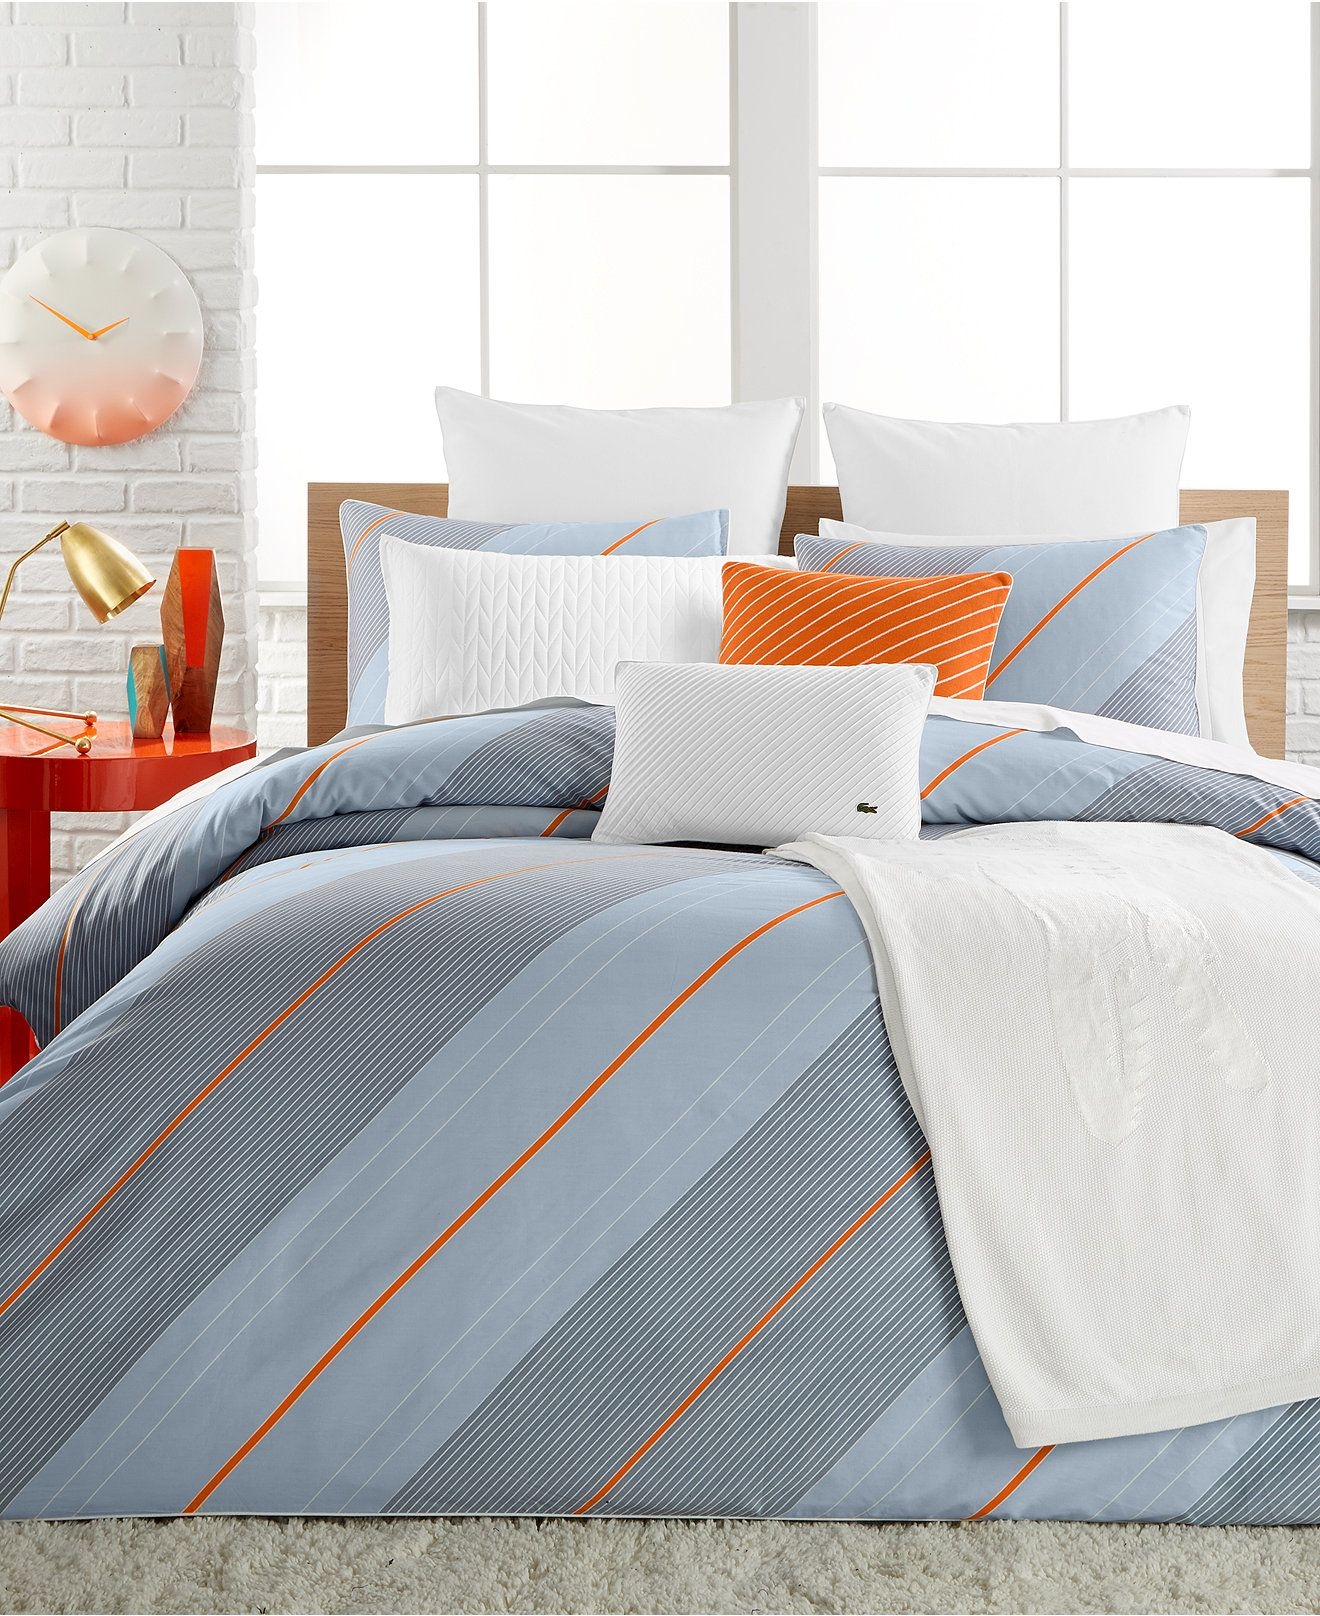 comforter set comfy lacoste deal valmorel essentials bedding cover home on cozy duvet spectacular twin extra long for shop every